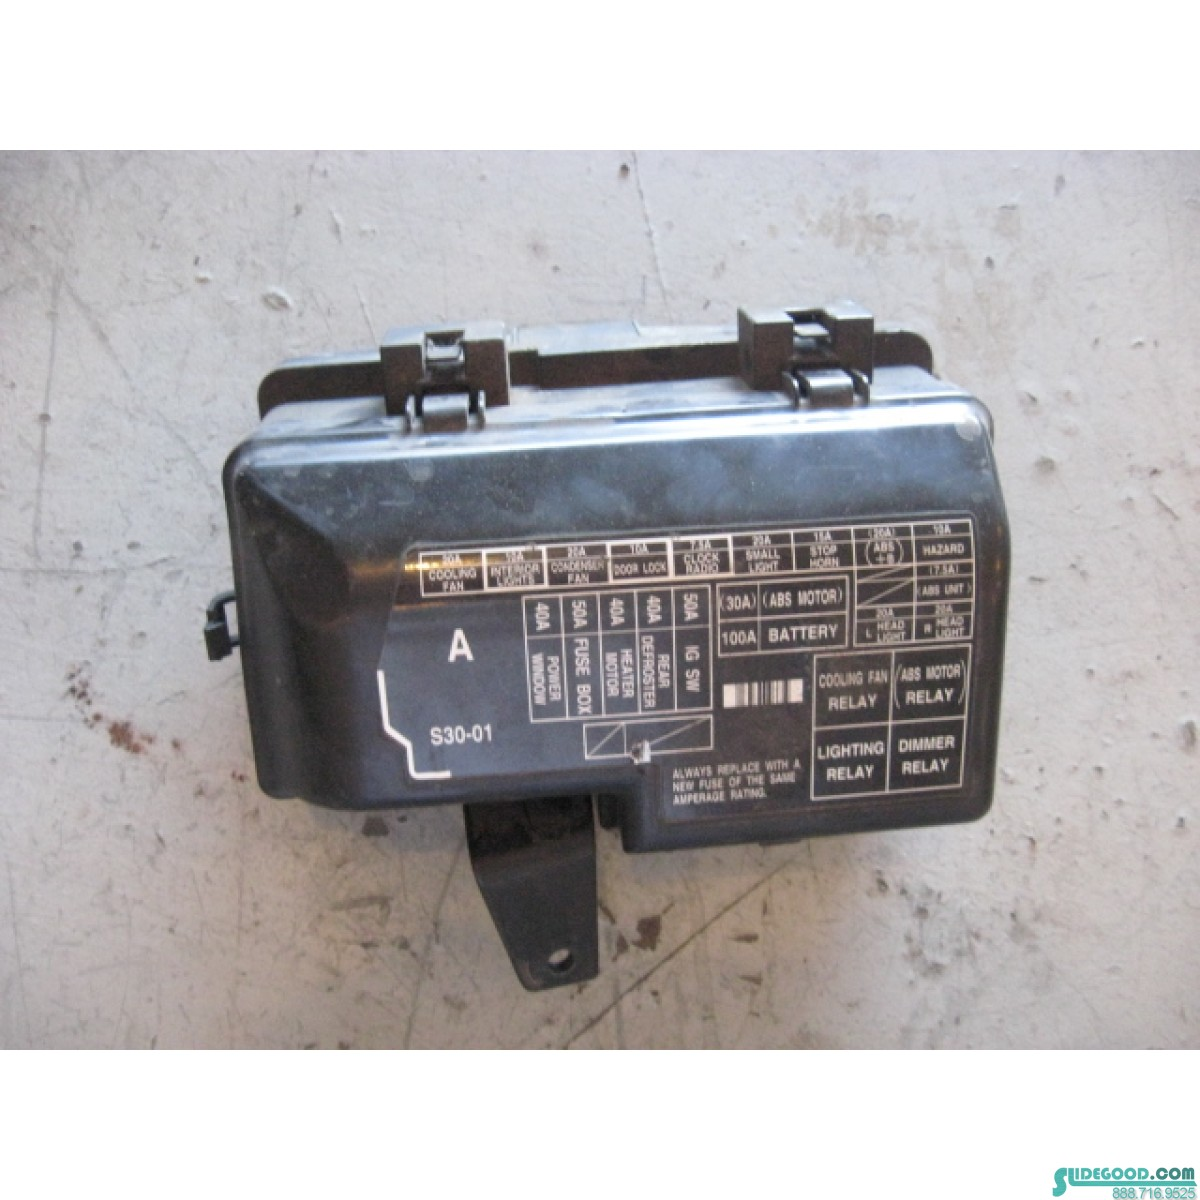 00 Honda Prelude Engine Bay Fuse Box R13369